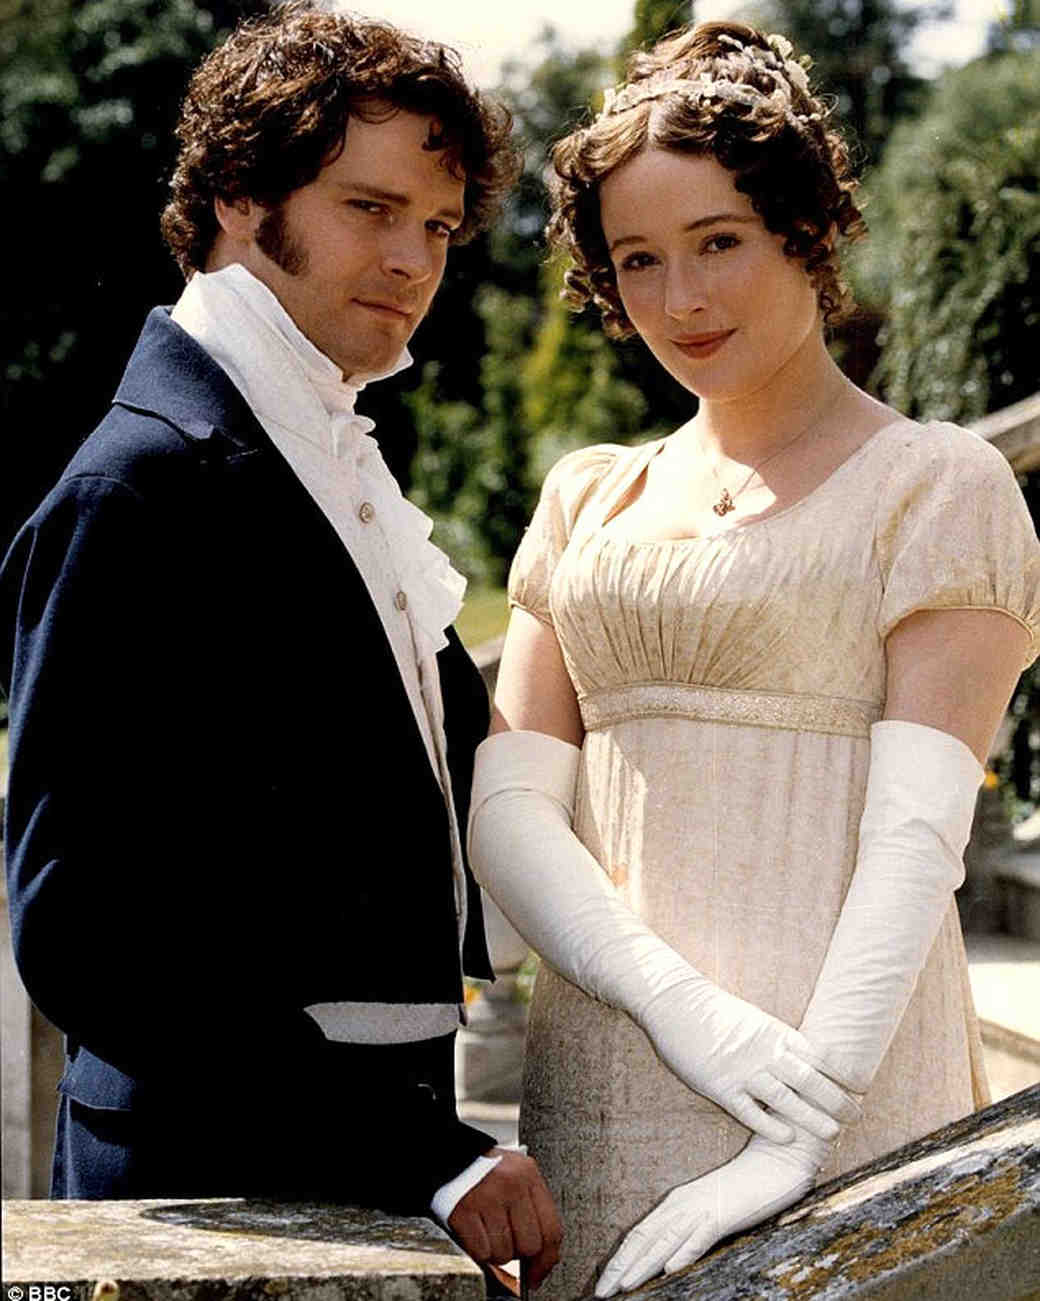 movie-wedding-dresses-pride-and-prejudice-colin-firth-jennifer-ehle-0316.jpg